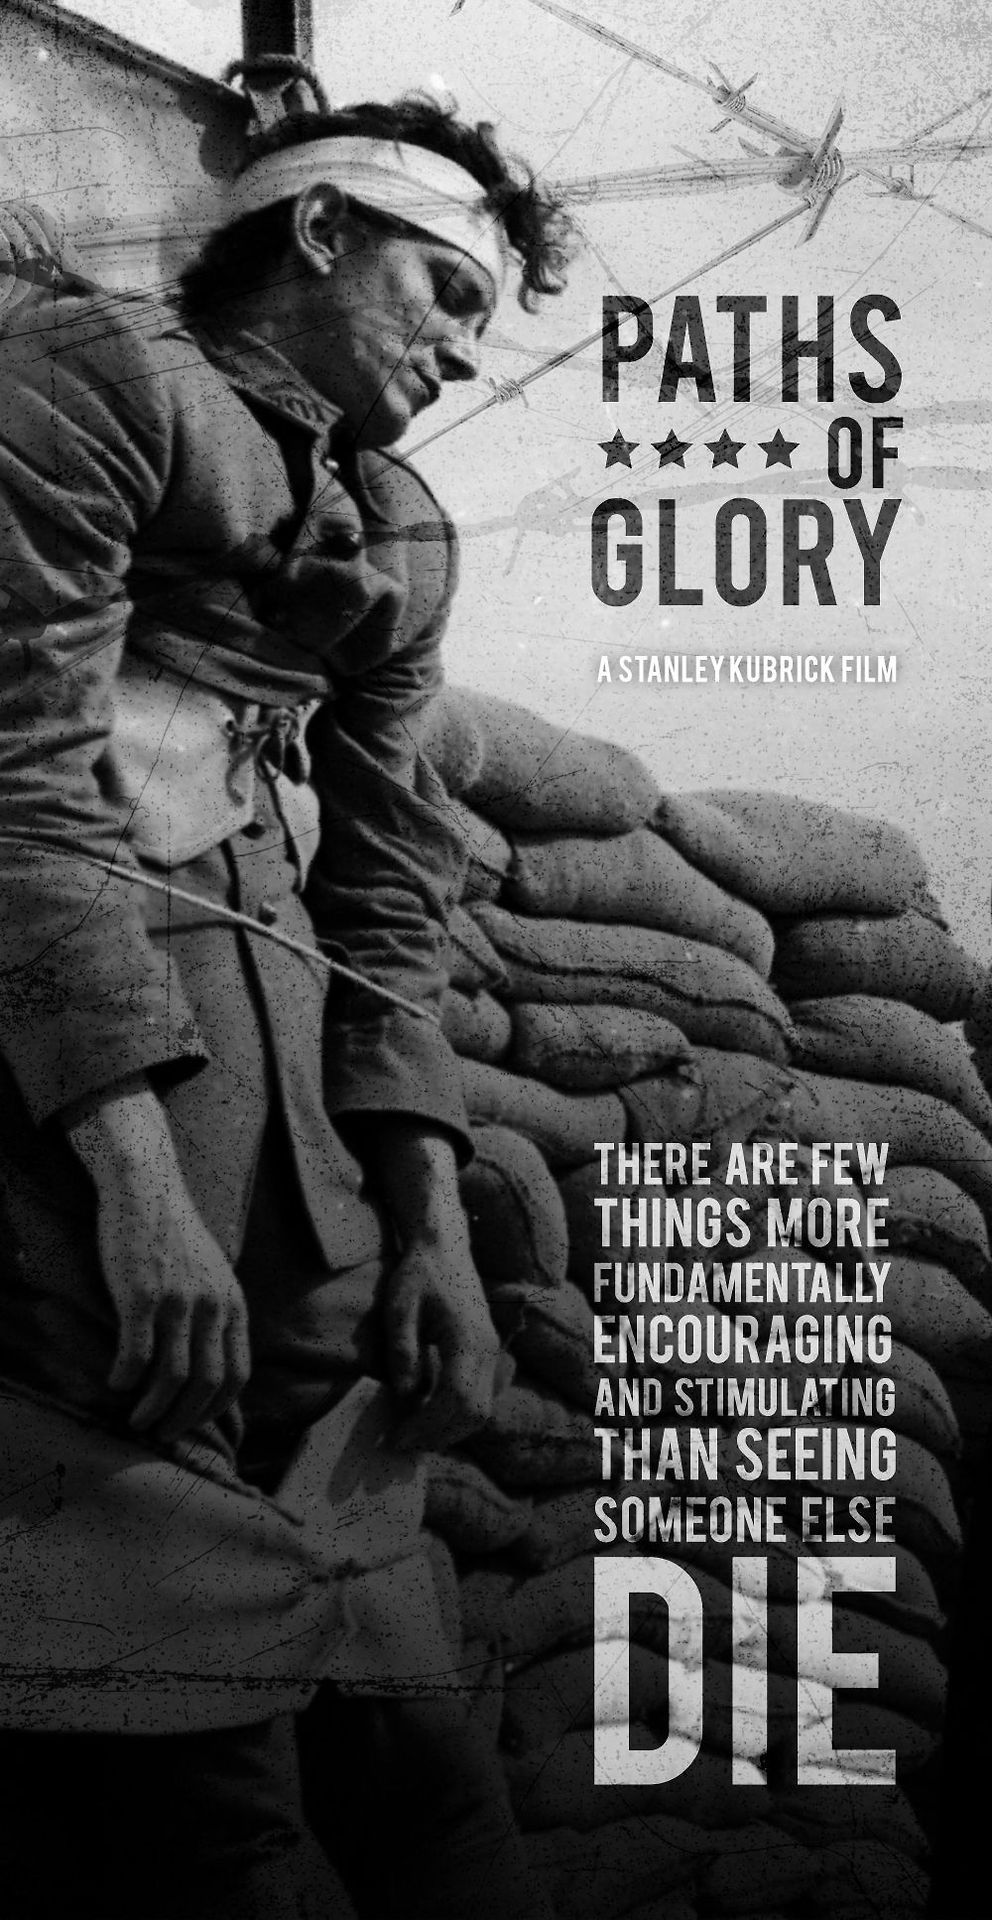 Paths of glory poster film posters art alternative